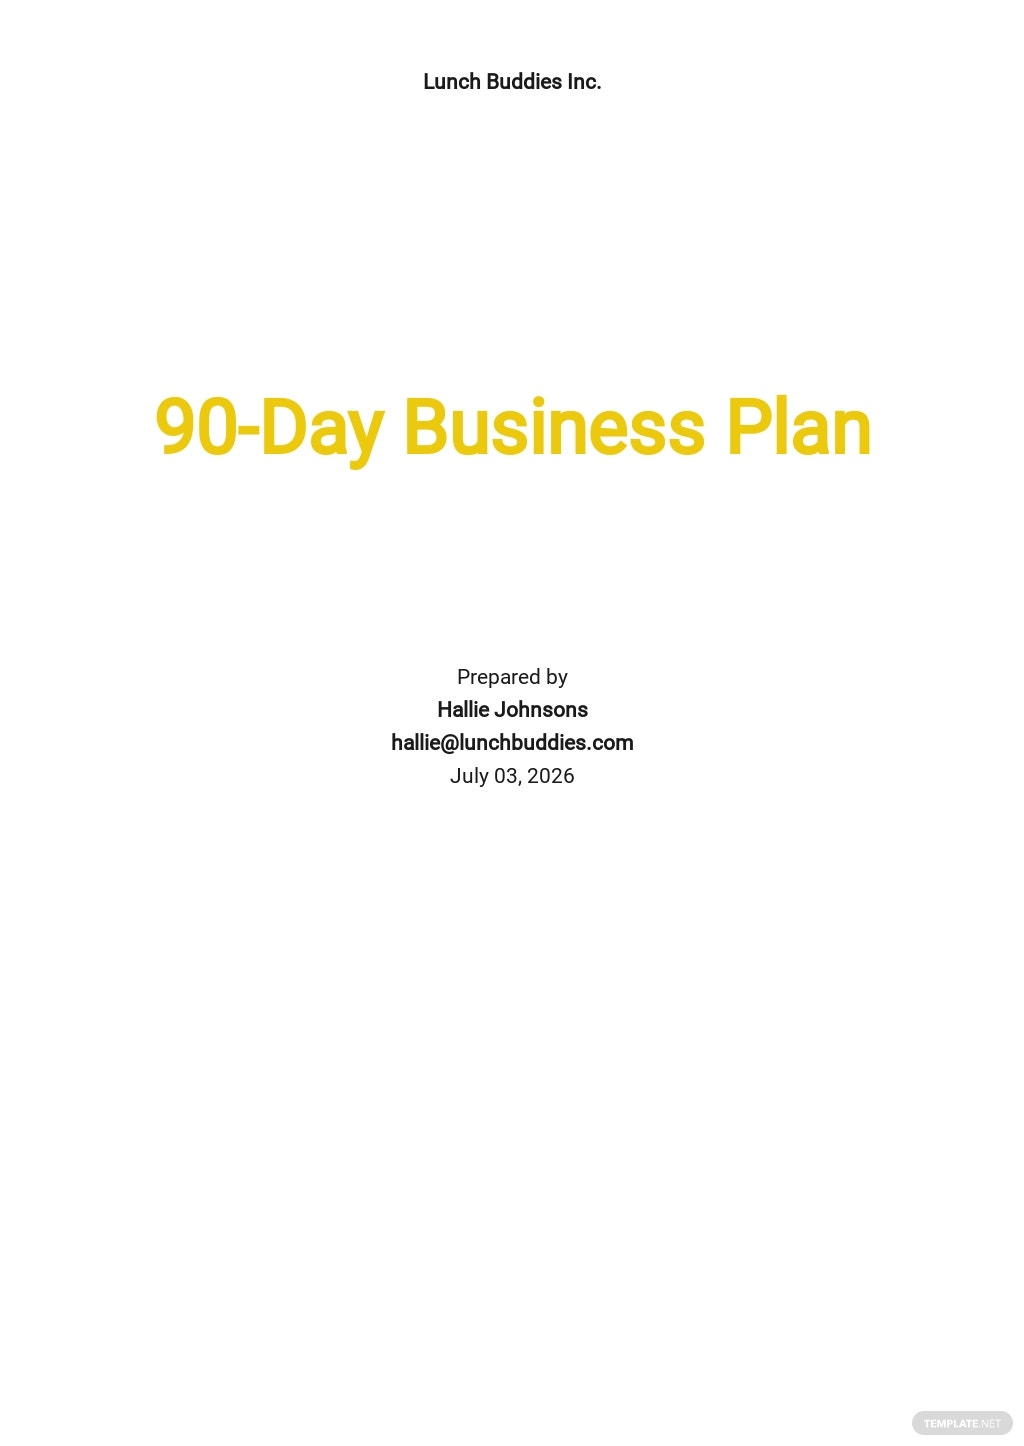 90-Day Business Plan Template